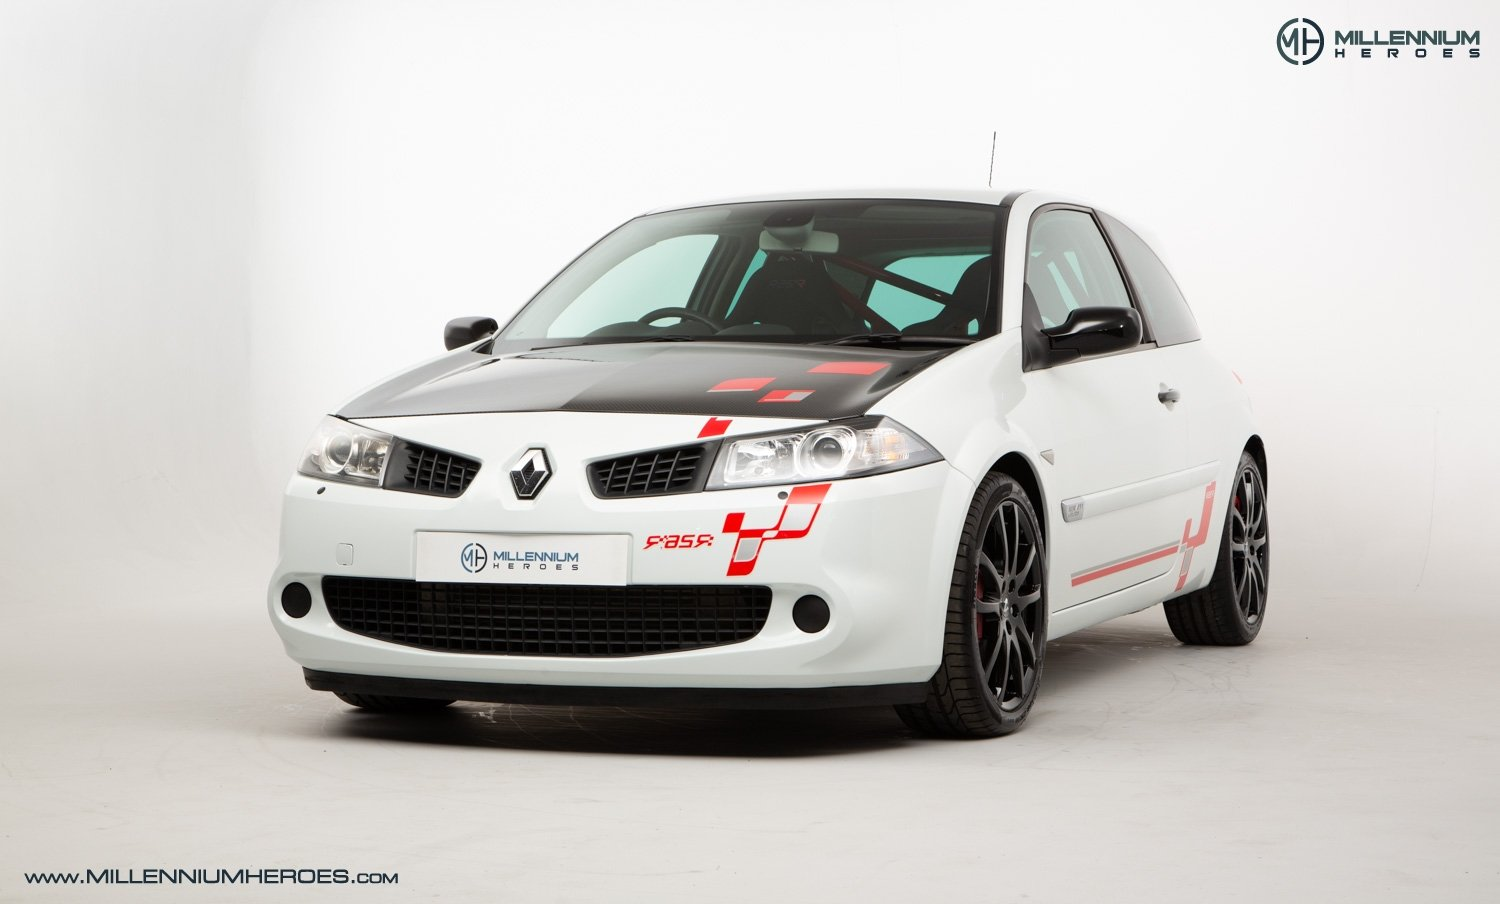 2008 RENAULT MEGANE RENAULTSPORT R26.R For Sale (picture 1 of 7)